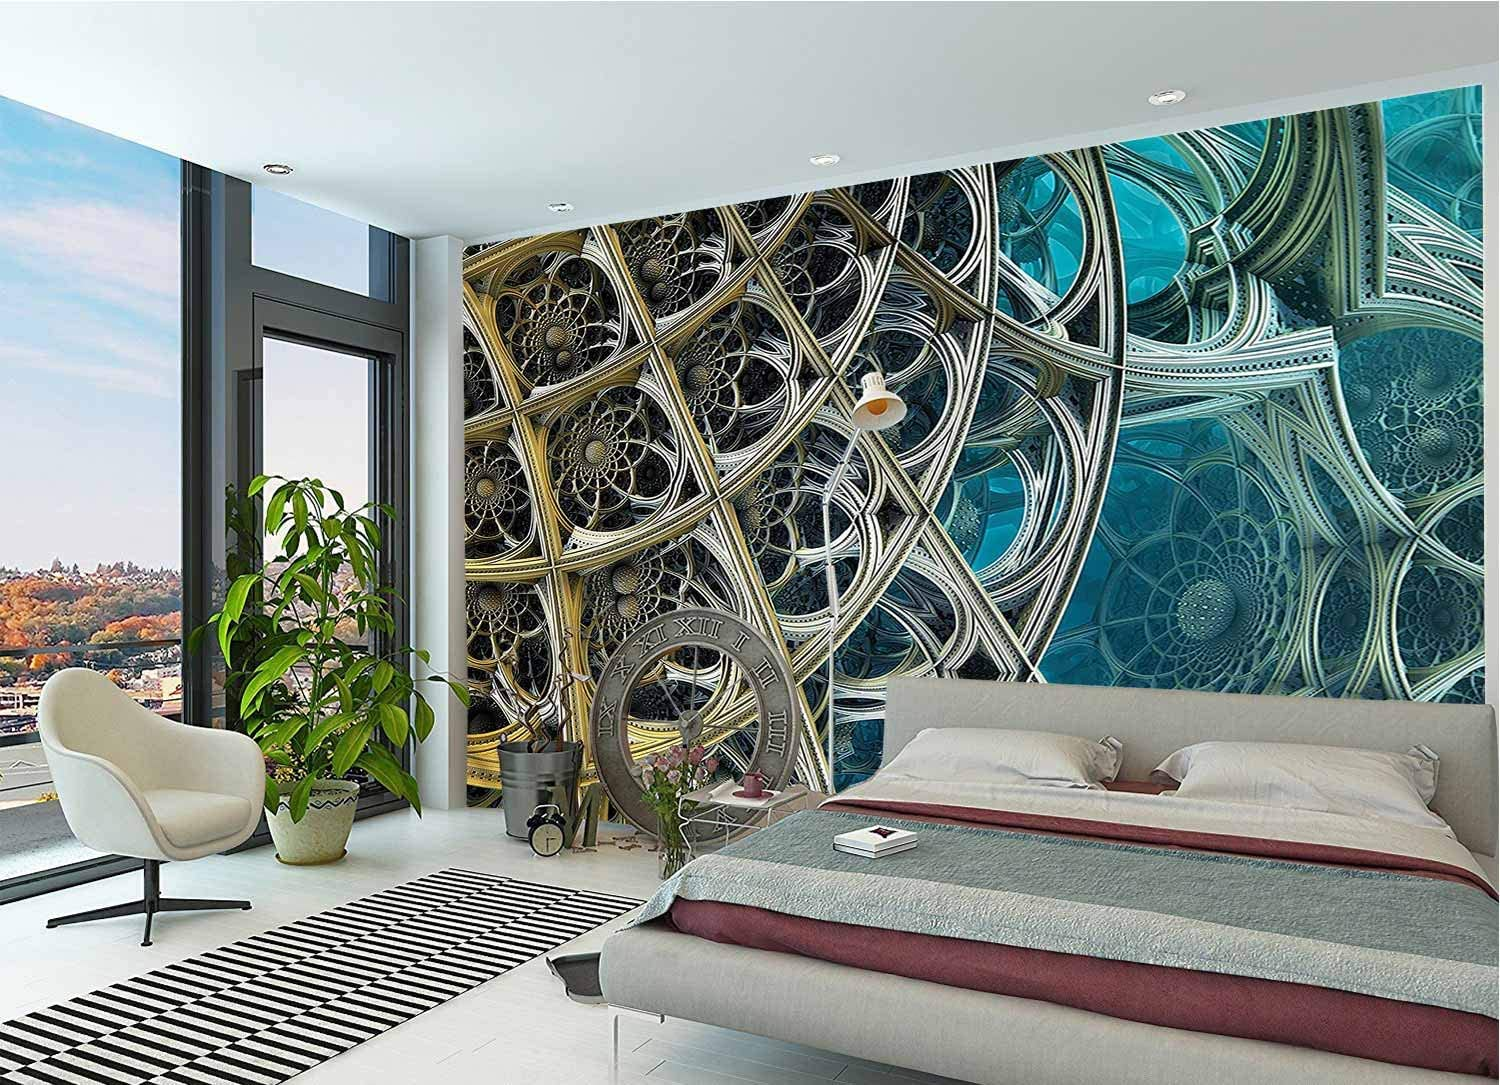 LCGGDB Fractal Wall Stickers Murals,Floral Themed Figures Paperhanging Wallpaper for Office Livingroom Girls Bedroom Family Wall Decals-118x83 Inch